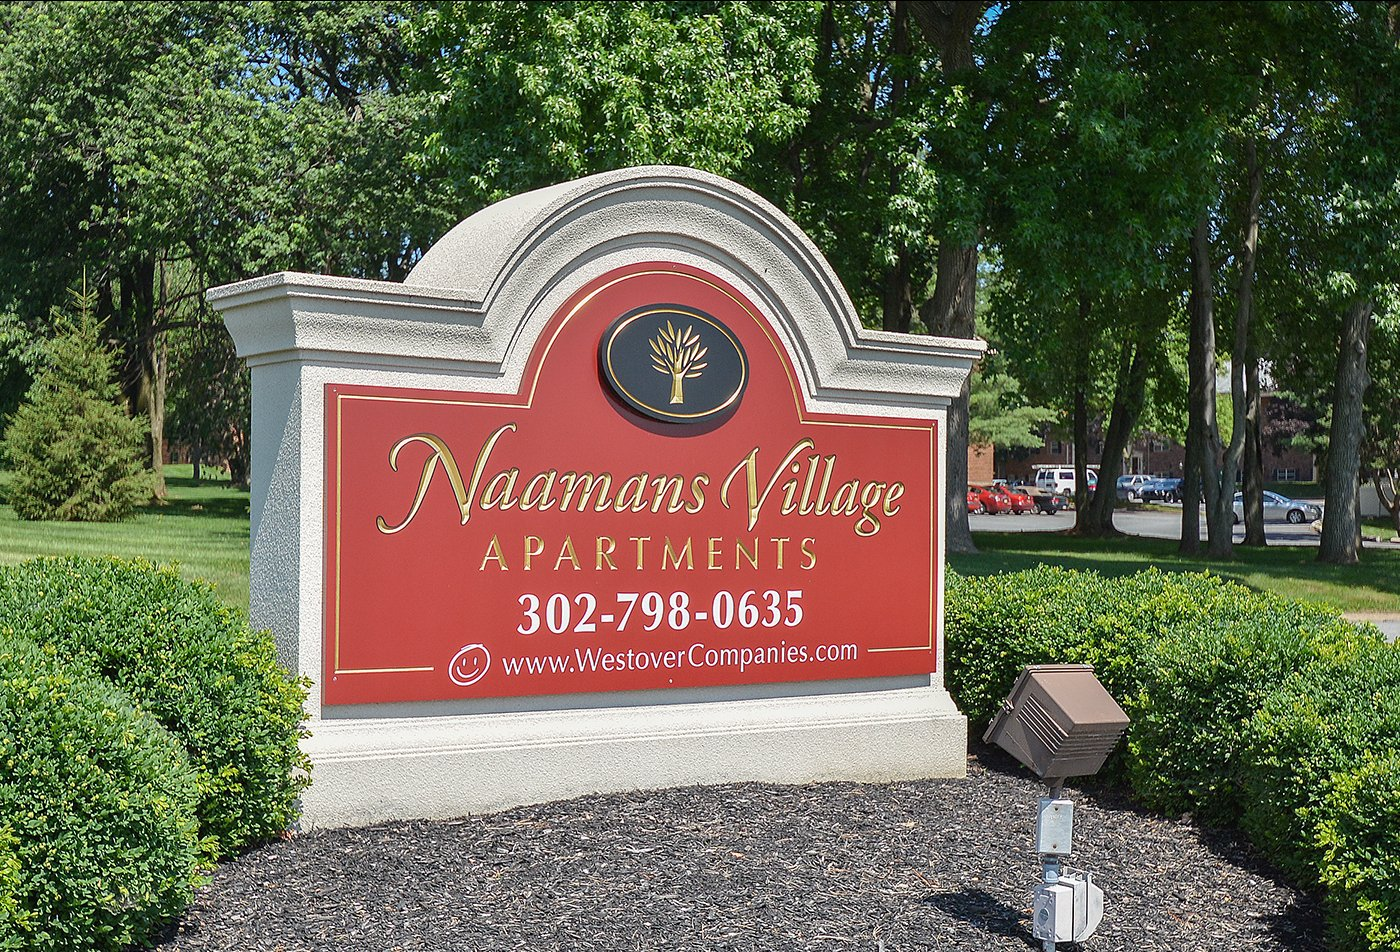 Apartments in Claymont, DE | Naamans Village Apartments